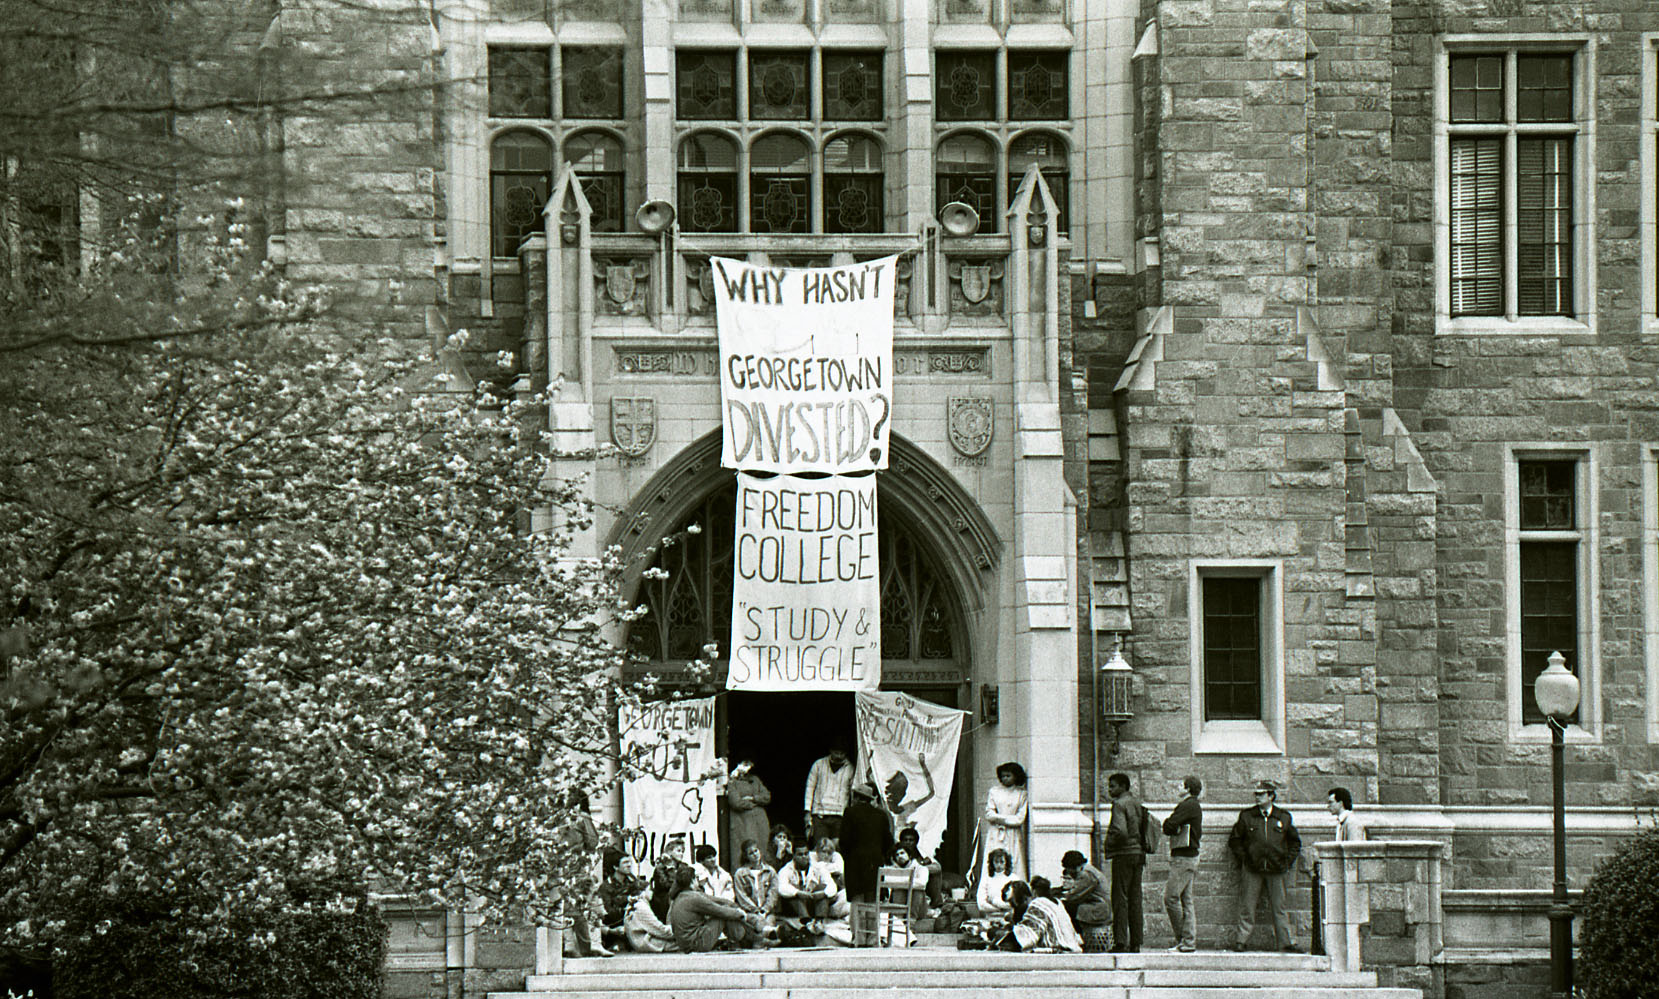 Students gather on the steps of White-Gravenor to protest Apartheid in South Africa and demand University divestment from South Africa